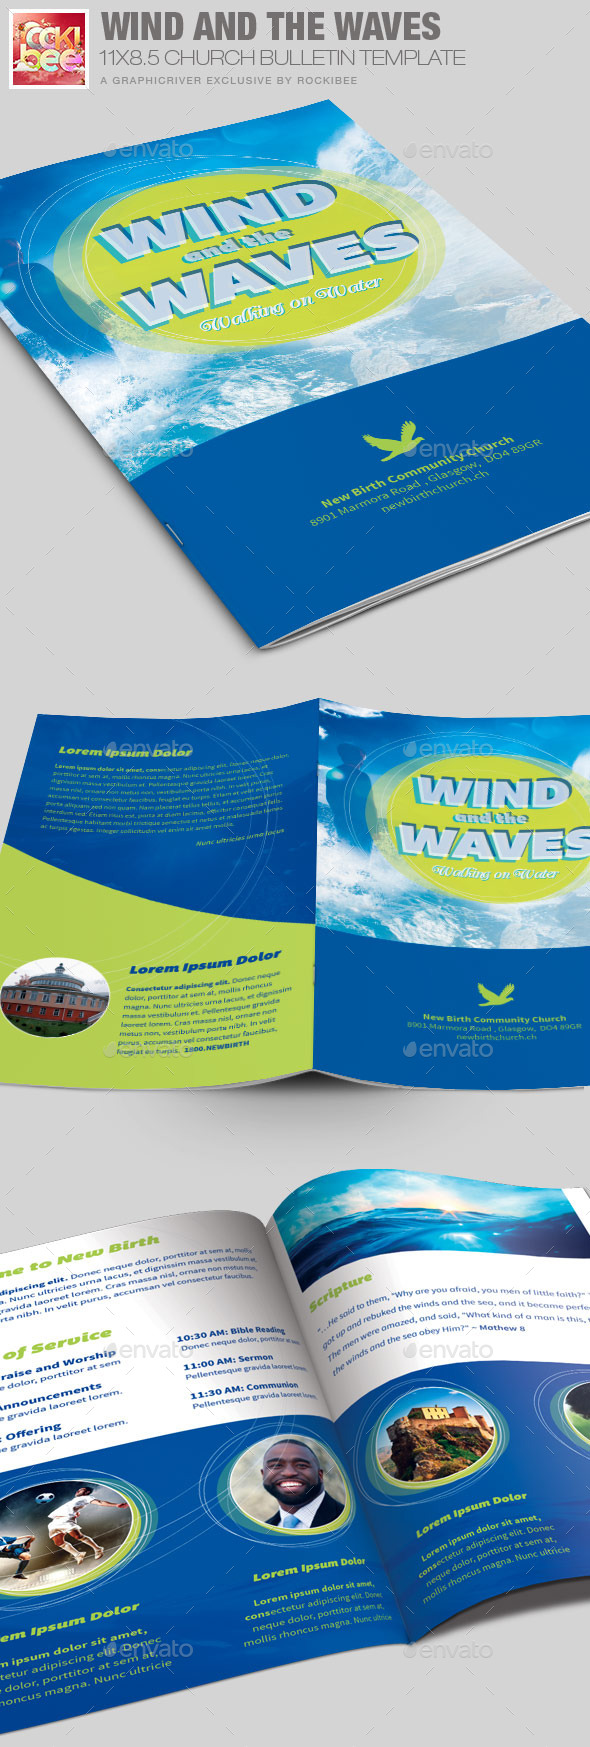 Wind and the  Waves Church Bulletin Template - Informational Brochures